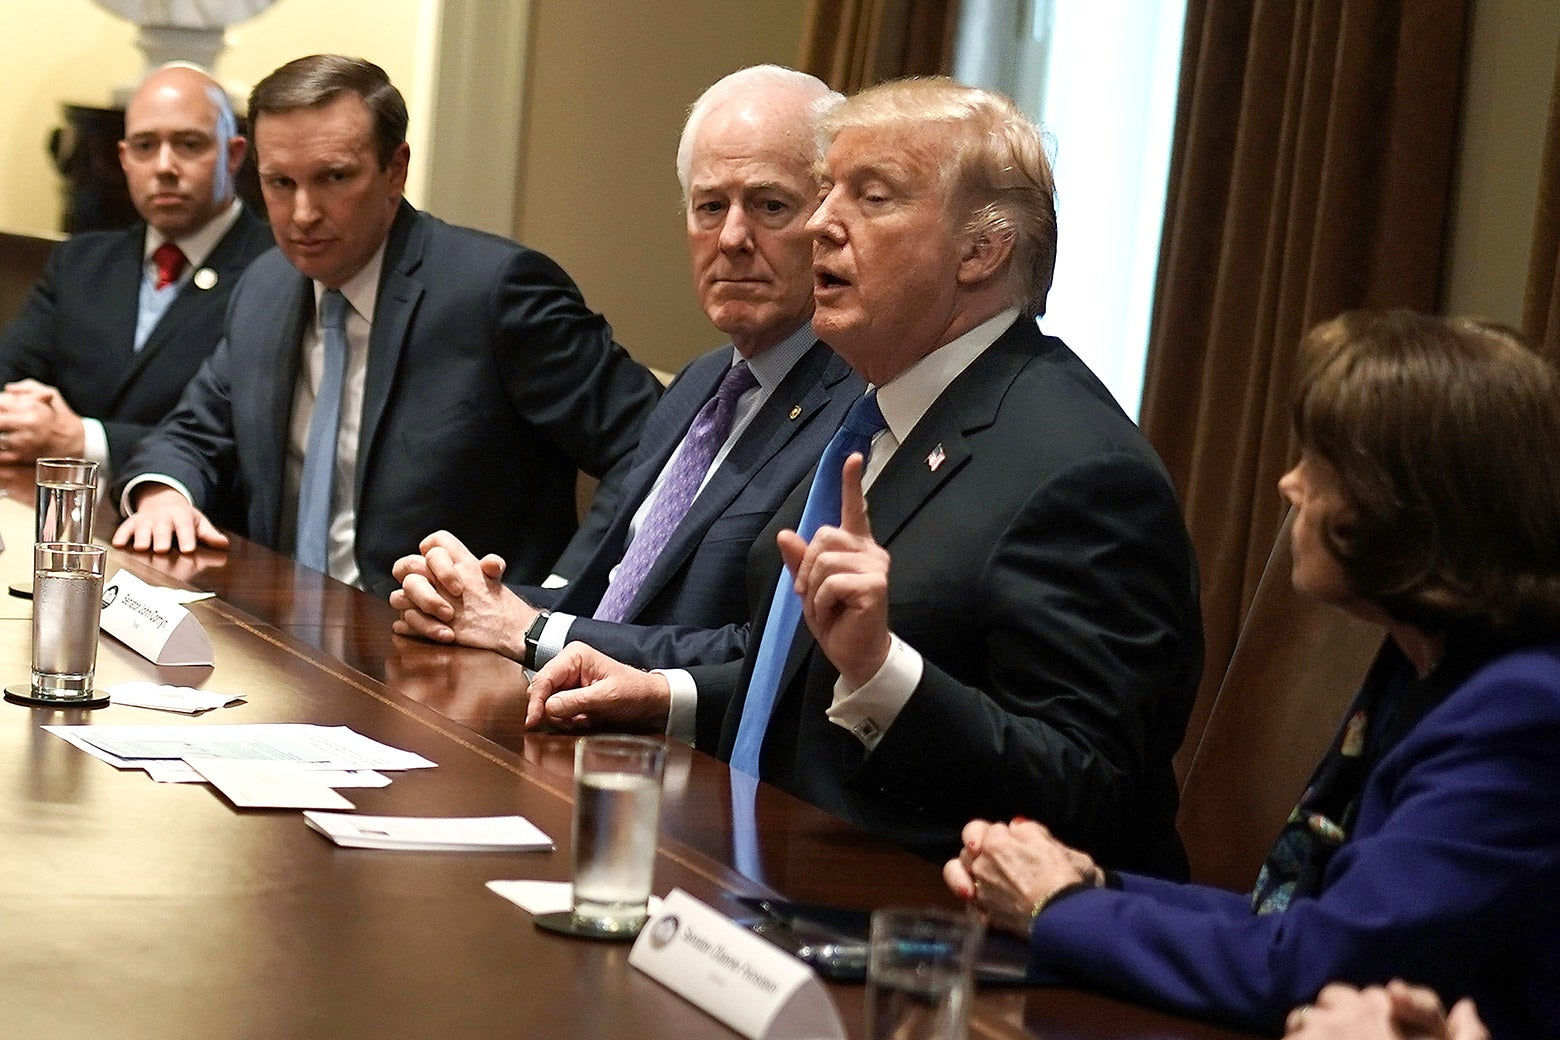 U.S. President Donald Trump (4th L) speaks as (L-R) Rep. Brian Mast (R-FL), Sen. Christopher Murphy (D-CT), Senate Majority Whip Sen. John Cornyn (R-TX) and Sen. Dianne Feinstein (D-CA) listen during a meeting with bipartisan members of the Congress at the Cabinet Room of the White House February 28, 2018 in Washington, DC.